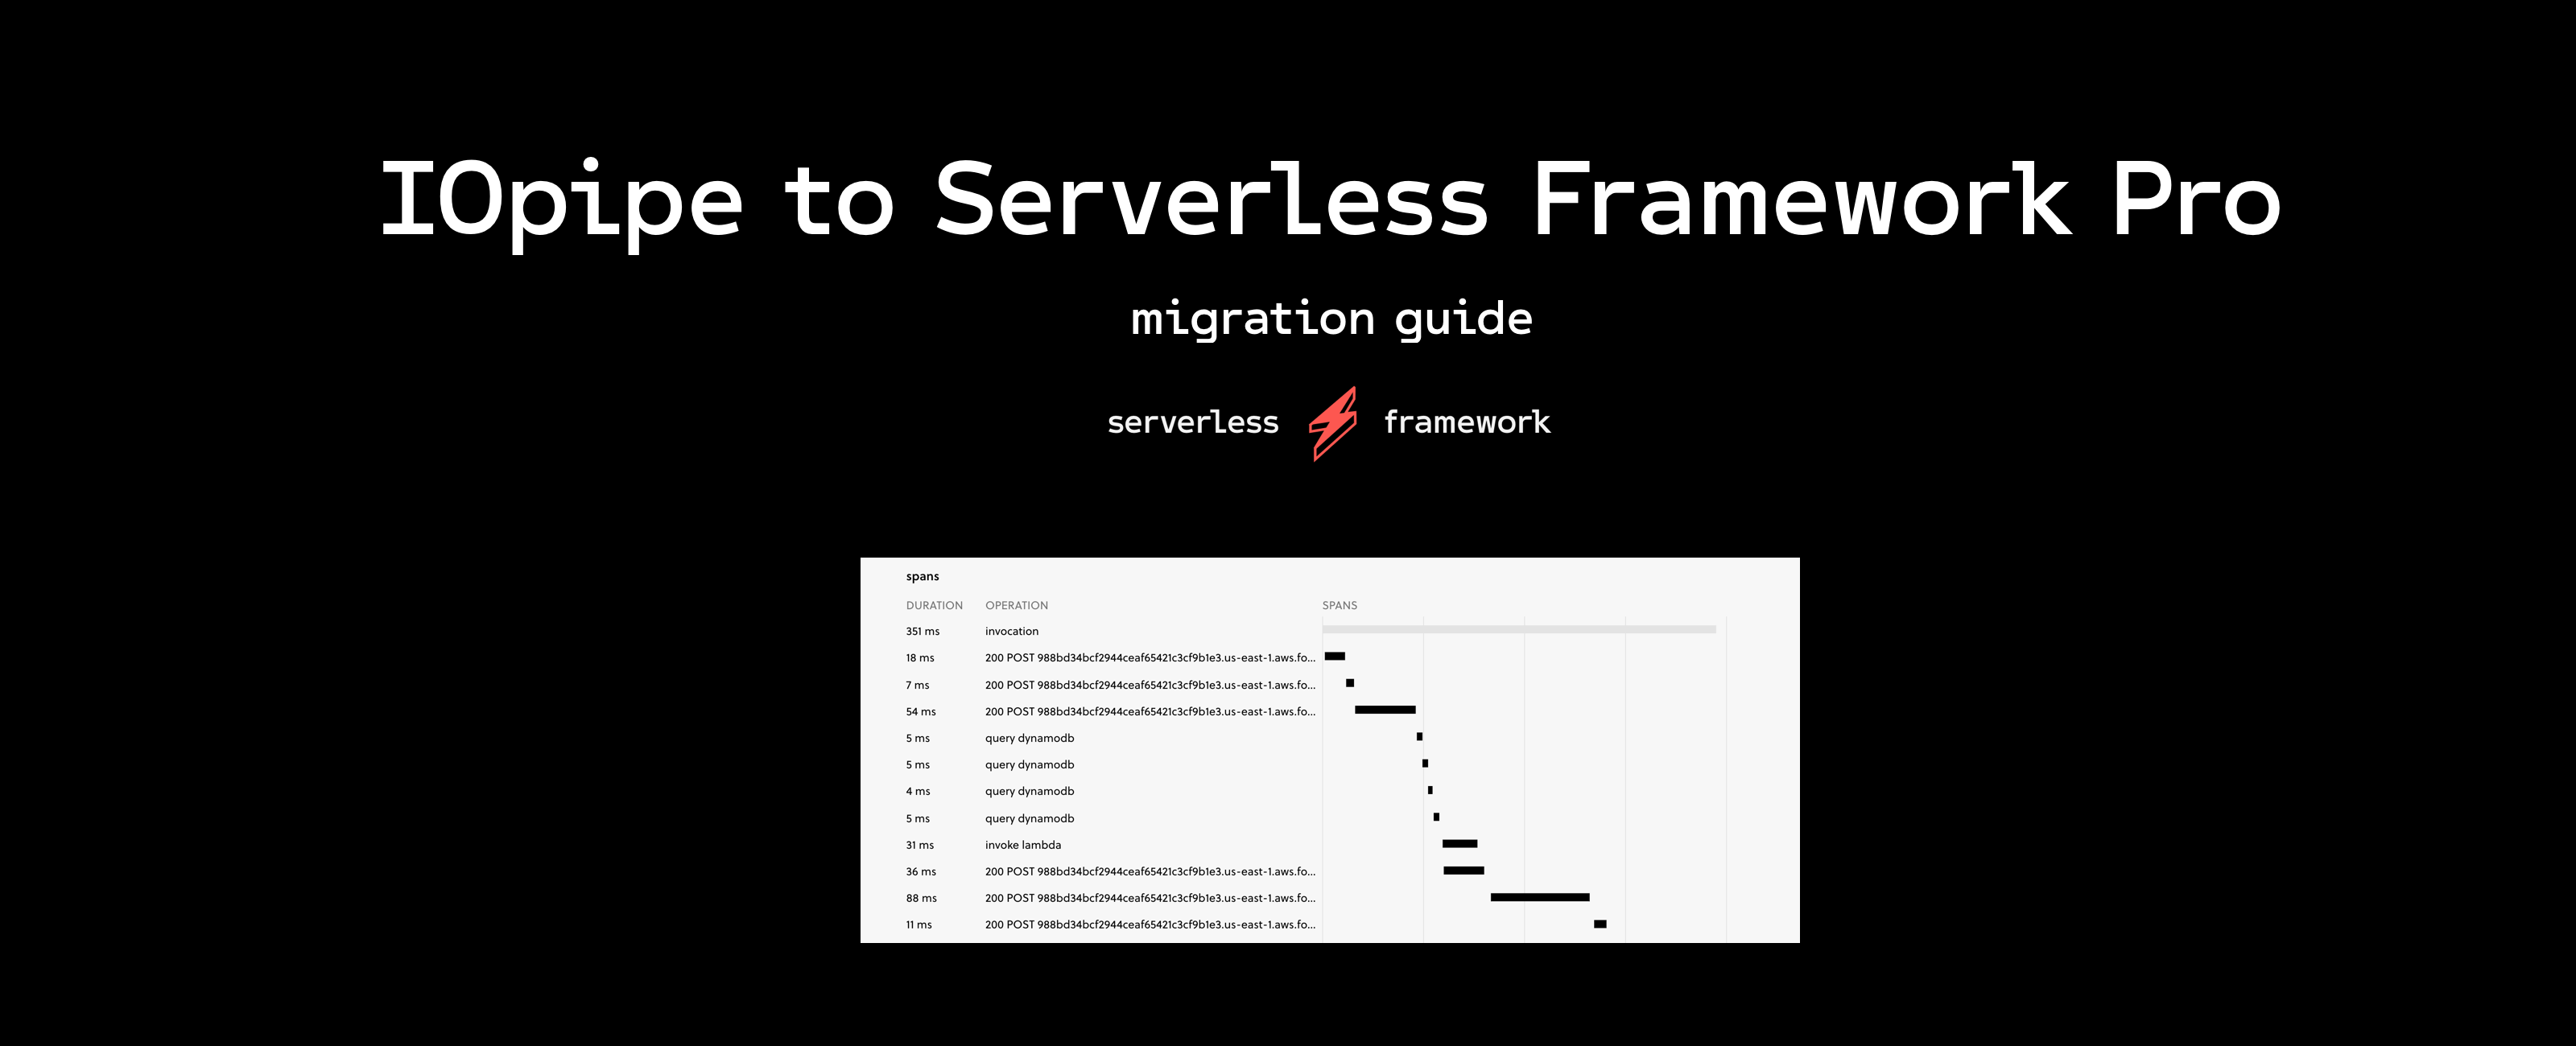 IOpipe to Serverless Pro Migration Guide